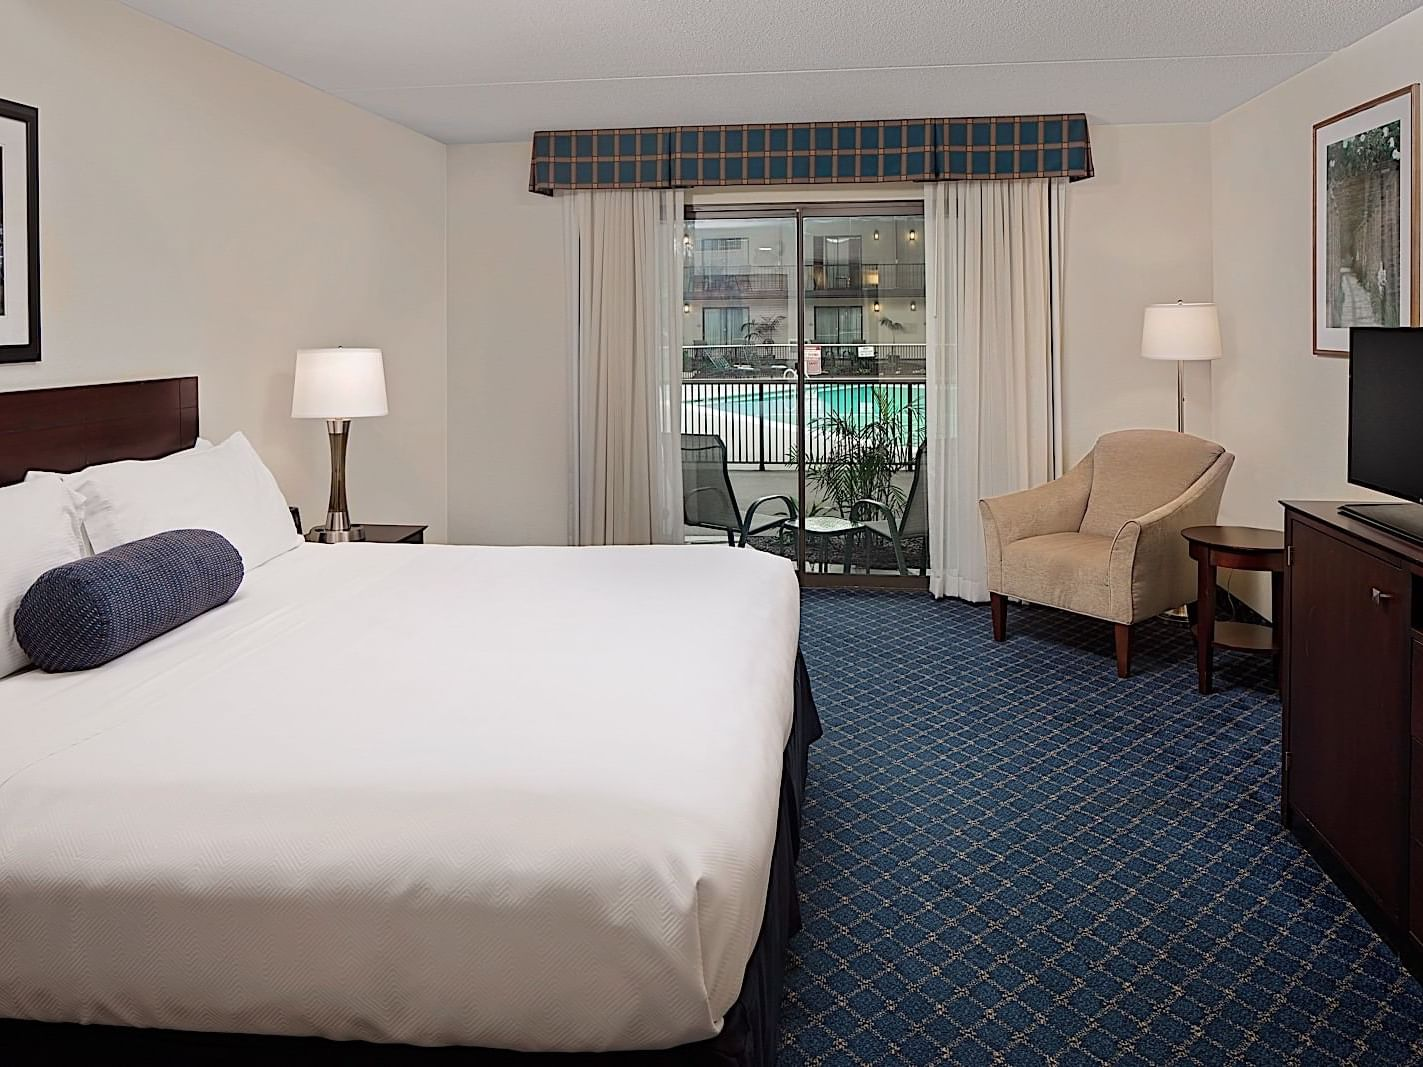 king bed with white sheets in hotel room with blue carpet and view of indoor pool